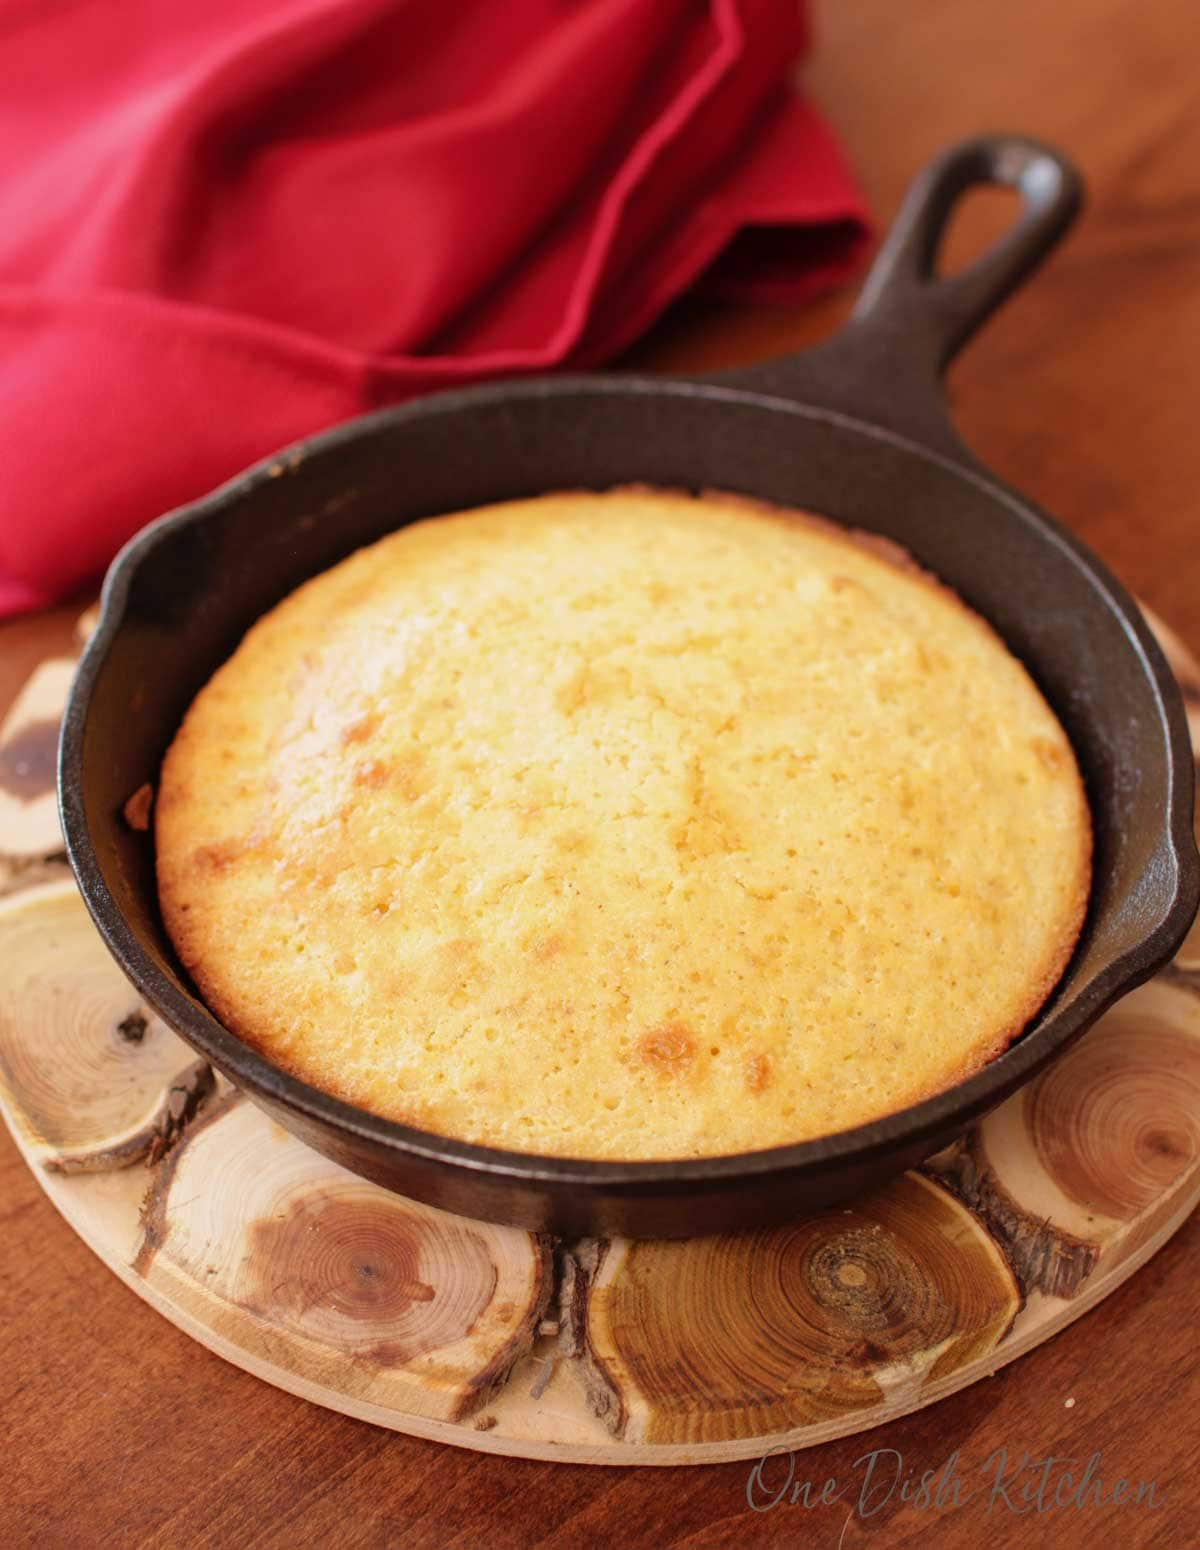 Cornbread in a small cast iron skillet next to a red napkin on a wooden trivet